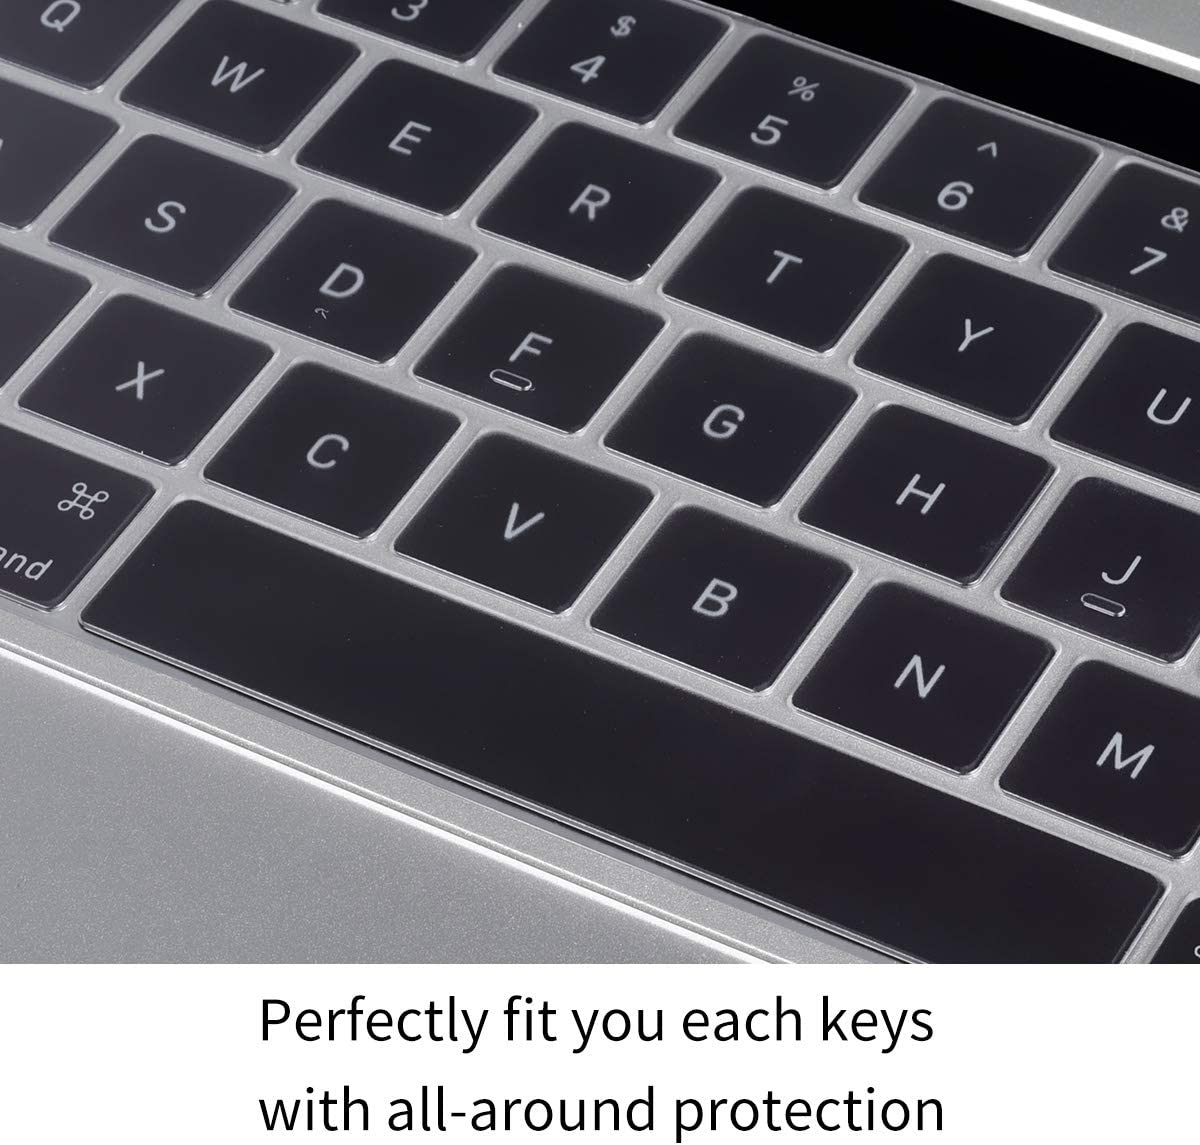 US Keyboard Layout Premium Ultra Thin Keyboard Cover Skin for MacBook Pro with Touch Bar 13 and 15 Apple Model Number A2159 A1706 A1707 A1989 A1990, 2019 2018 2017 2016 Release